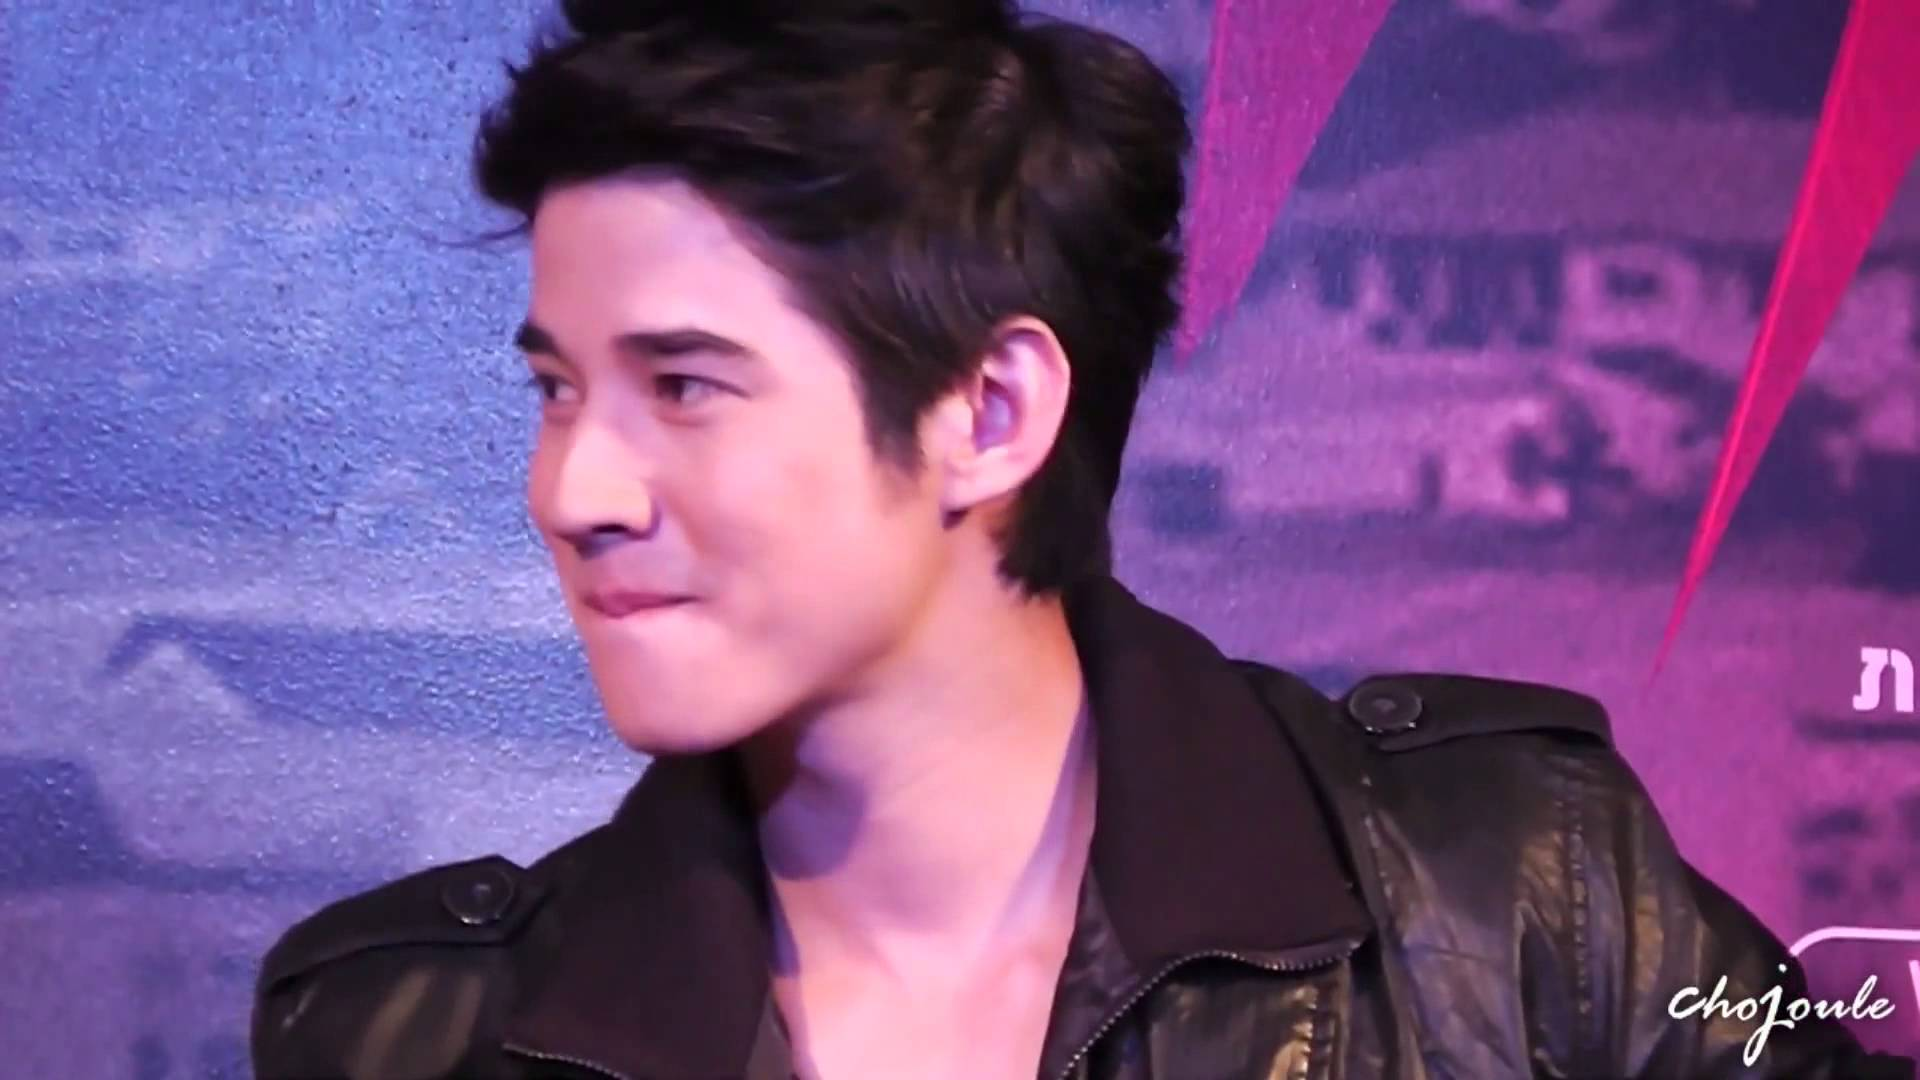 mario maurer Mario maurer movies  mario maurer movies 179 pictures 17 lists sort by:  watched total - top rated - top rated popular - want to watch - release date.